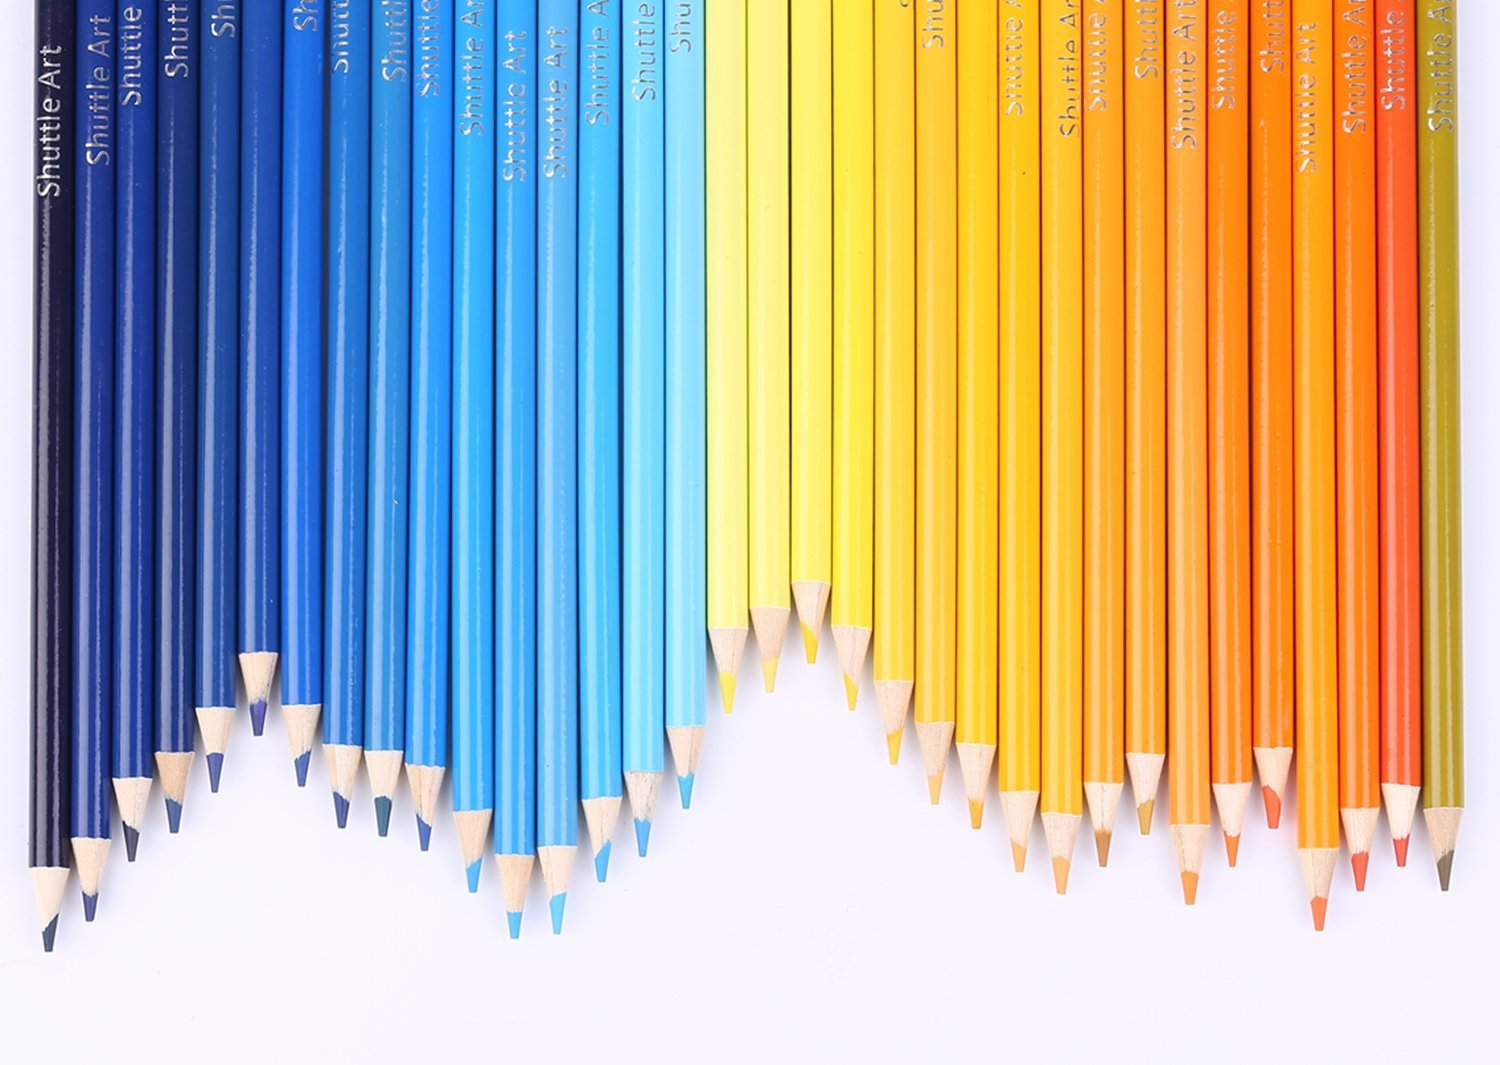 Coloring pencils with a finely graduated range of colors